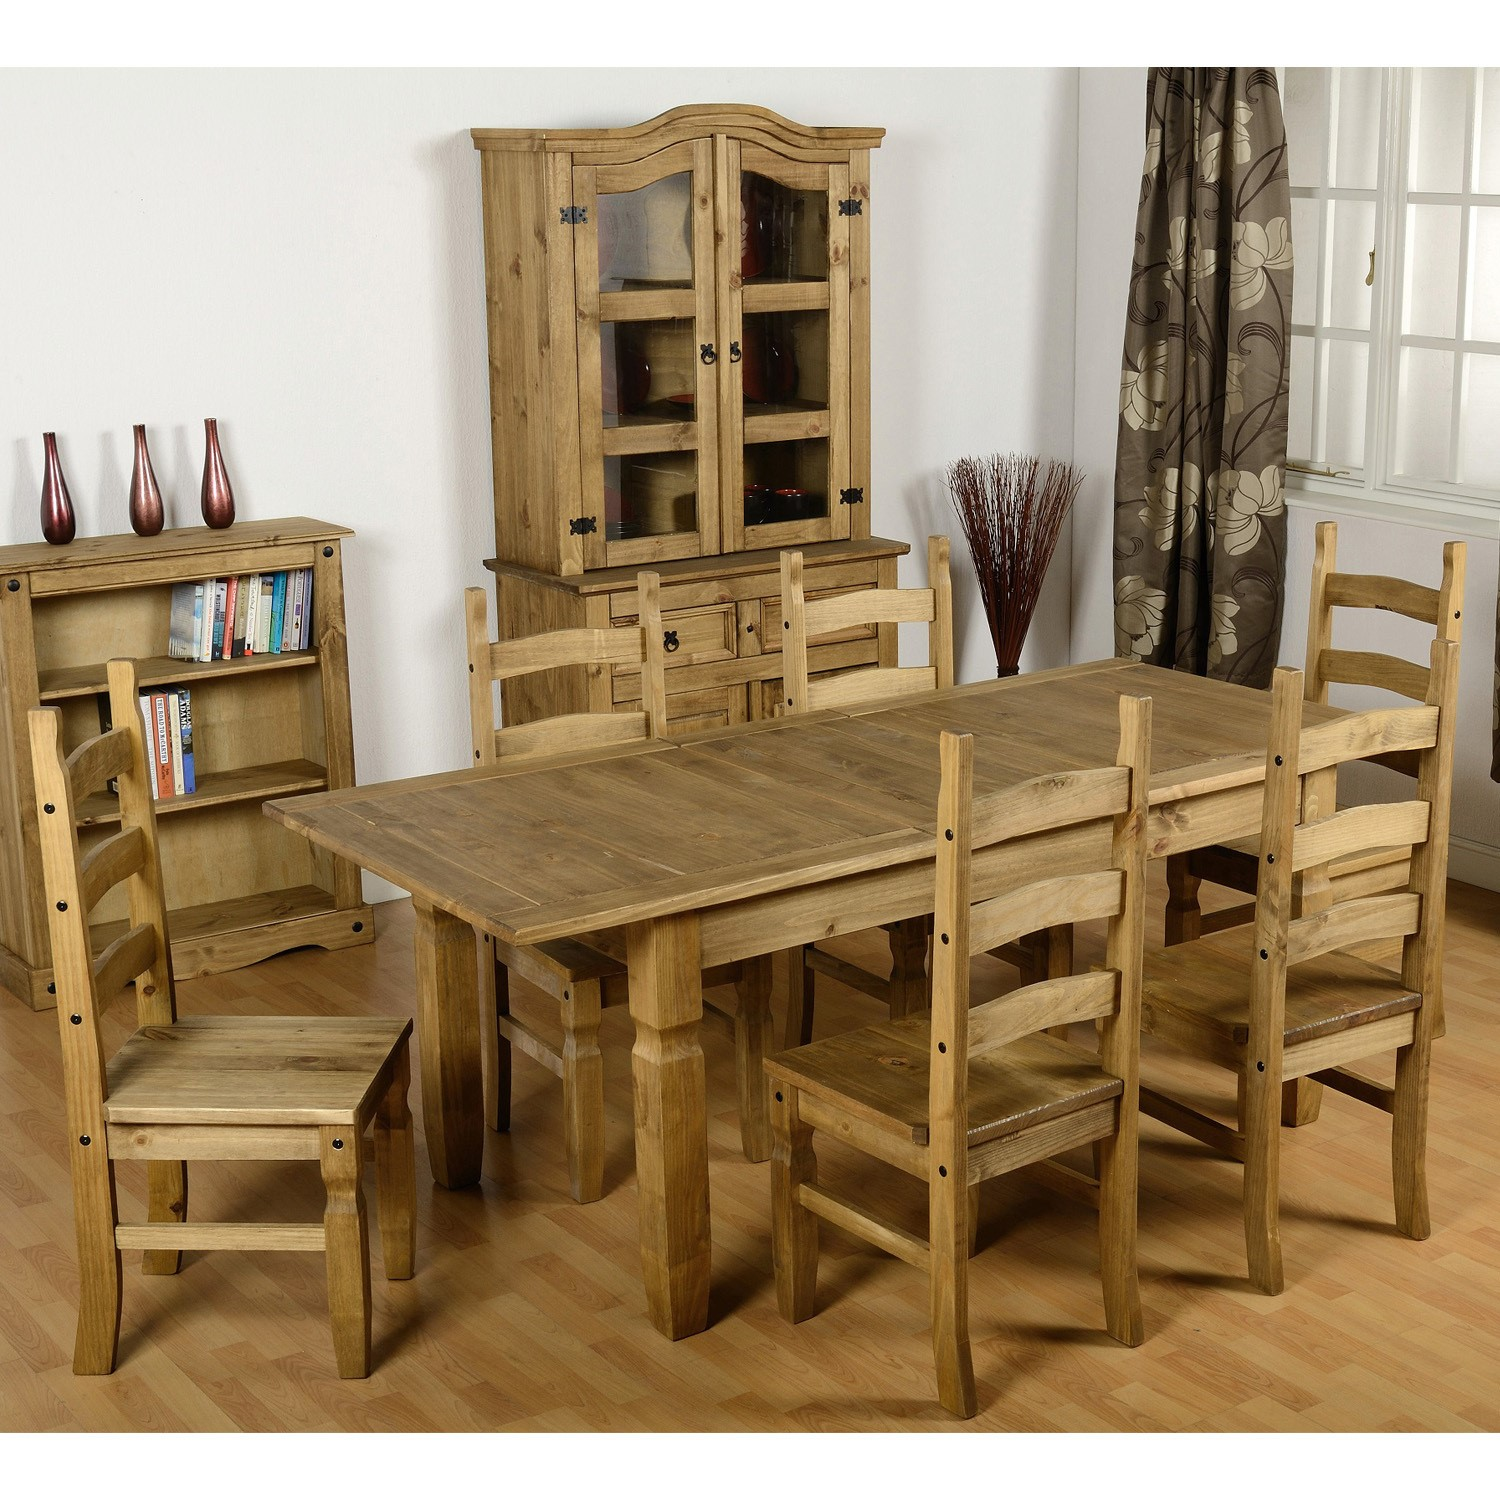 Seconique Corona Extendable Dining Table & 9 Pine Dining Chairs